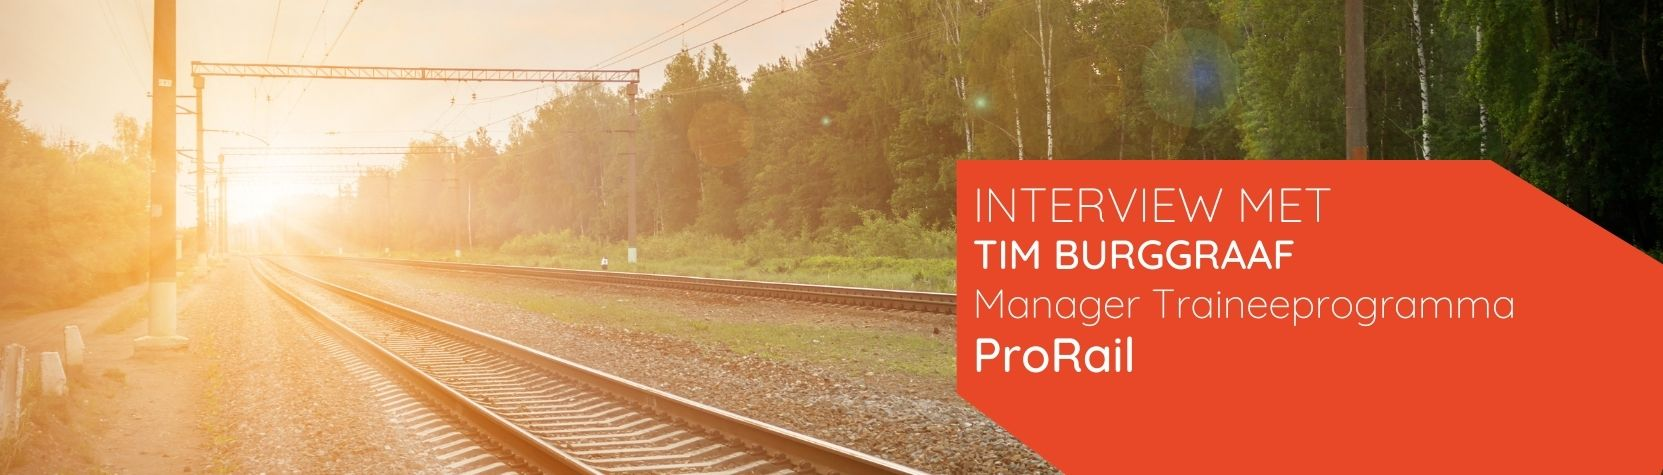 Vds training consultants interview prorail tim burggraaf